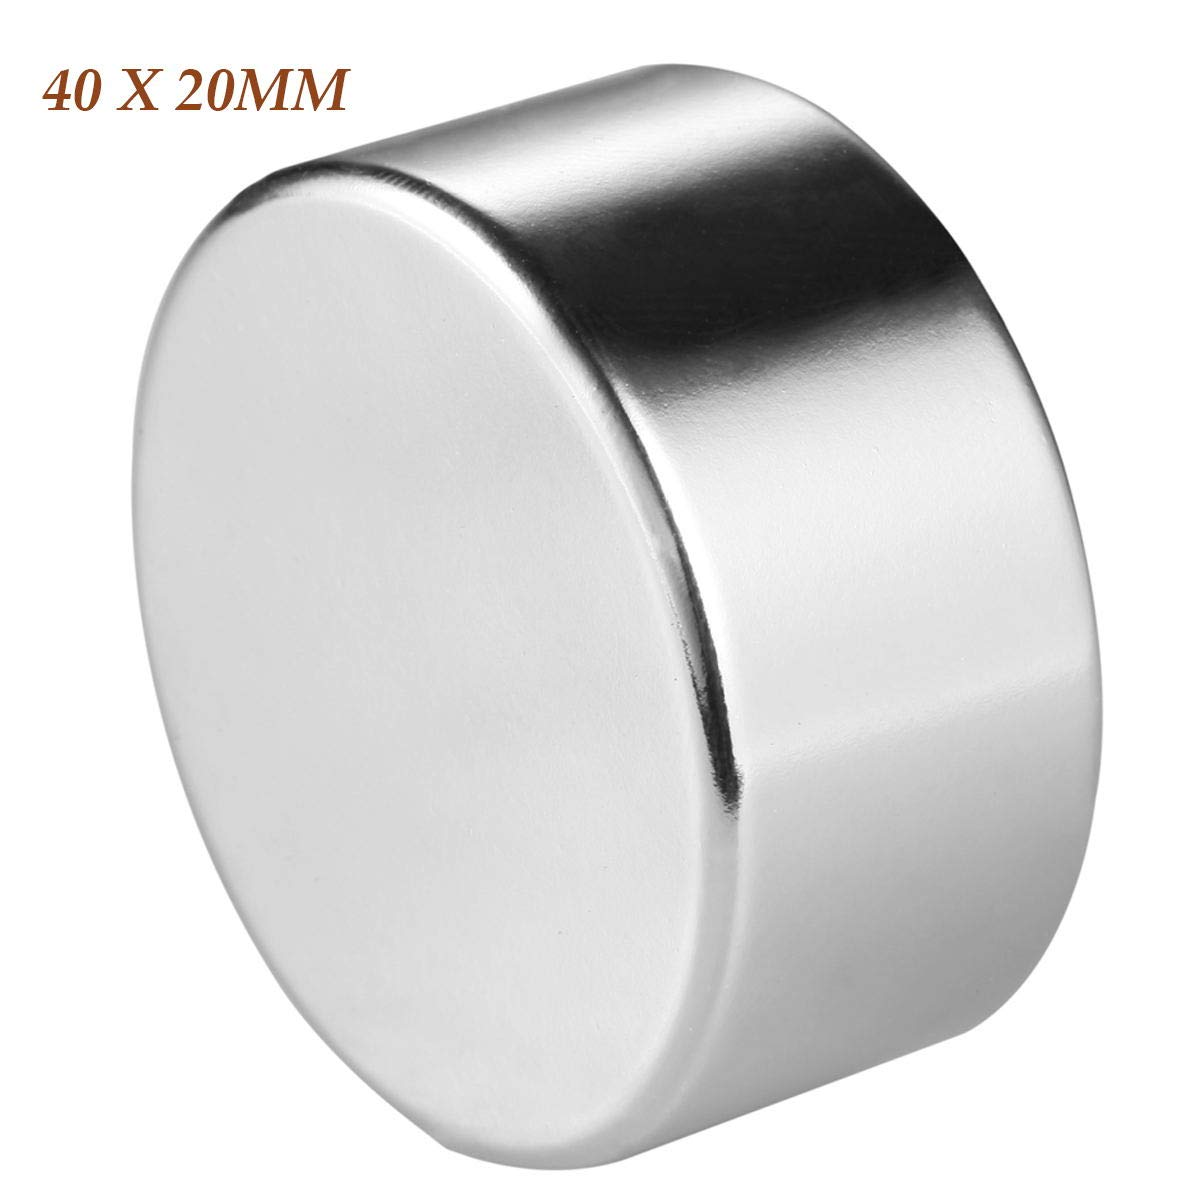 Wukong Cylindrical Neodymium Magnet N52 Permanent Magnet, The World's Strongest Rare Earth Magnets Widely Used in DIY Scientific Experiments(40MM X 20MM)